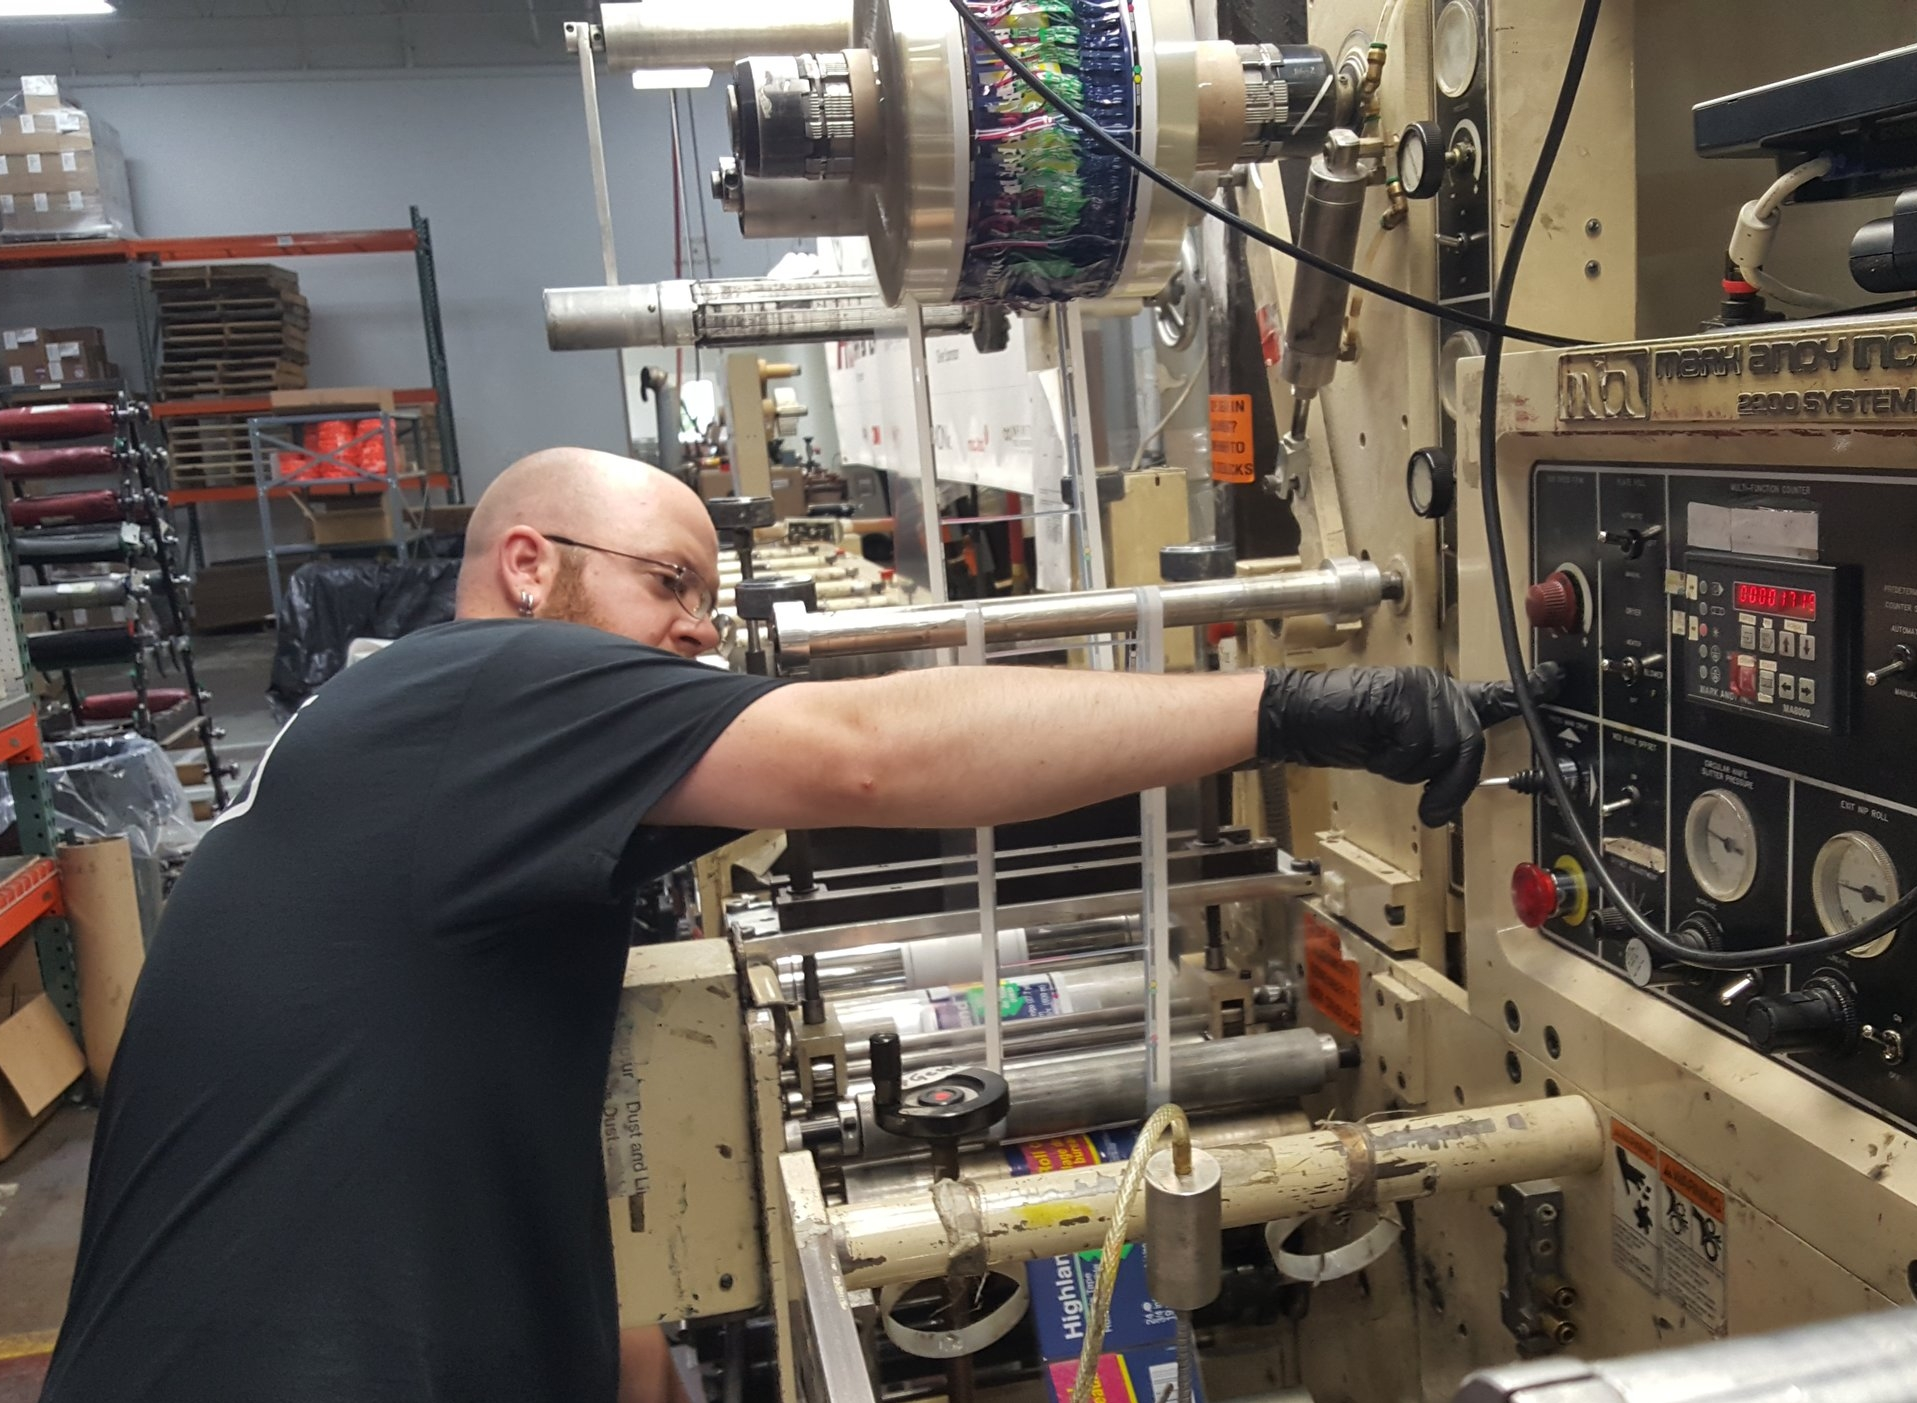 Aaron Pitt - Flexo Tech has really opened my eyes to the flexographic printing industry. There's so much to learn, and Shawn made it really fun. After the course I feel like I have the knowledge to put out the highest quality product every time I work.